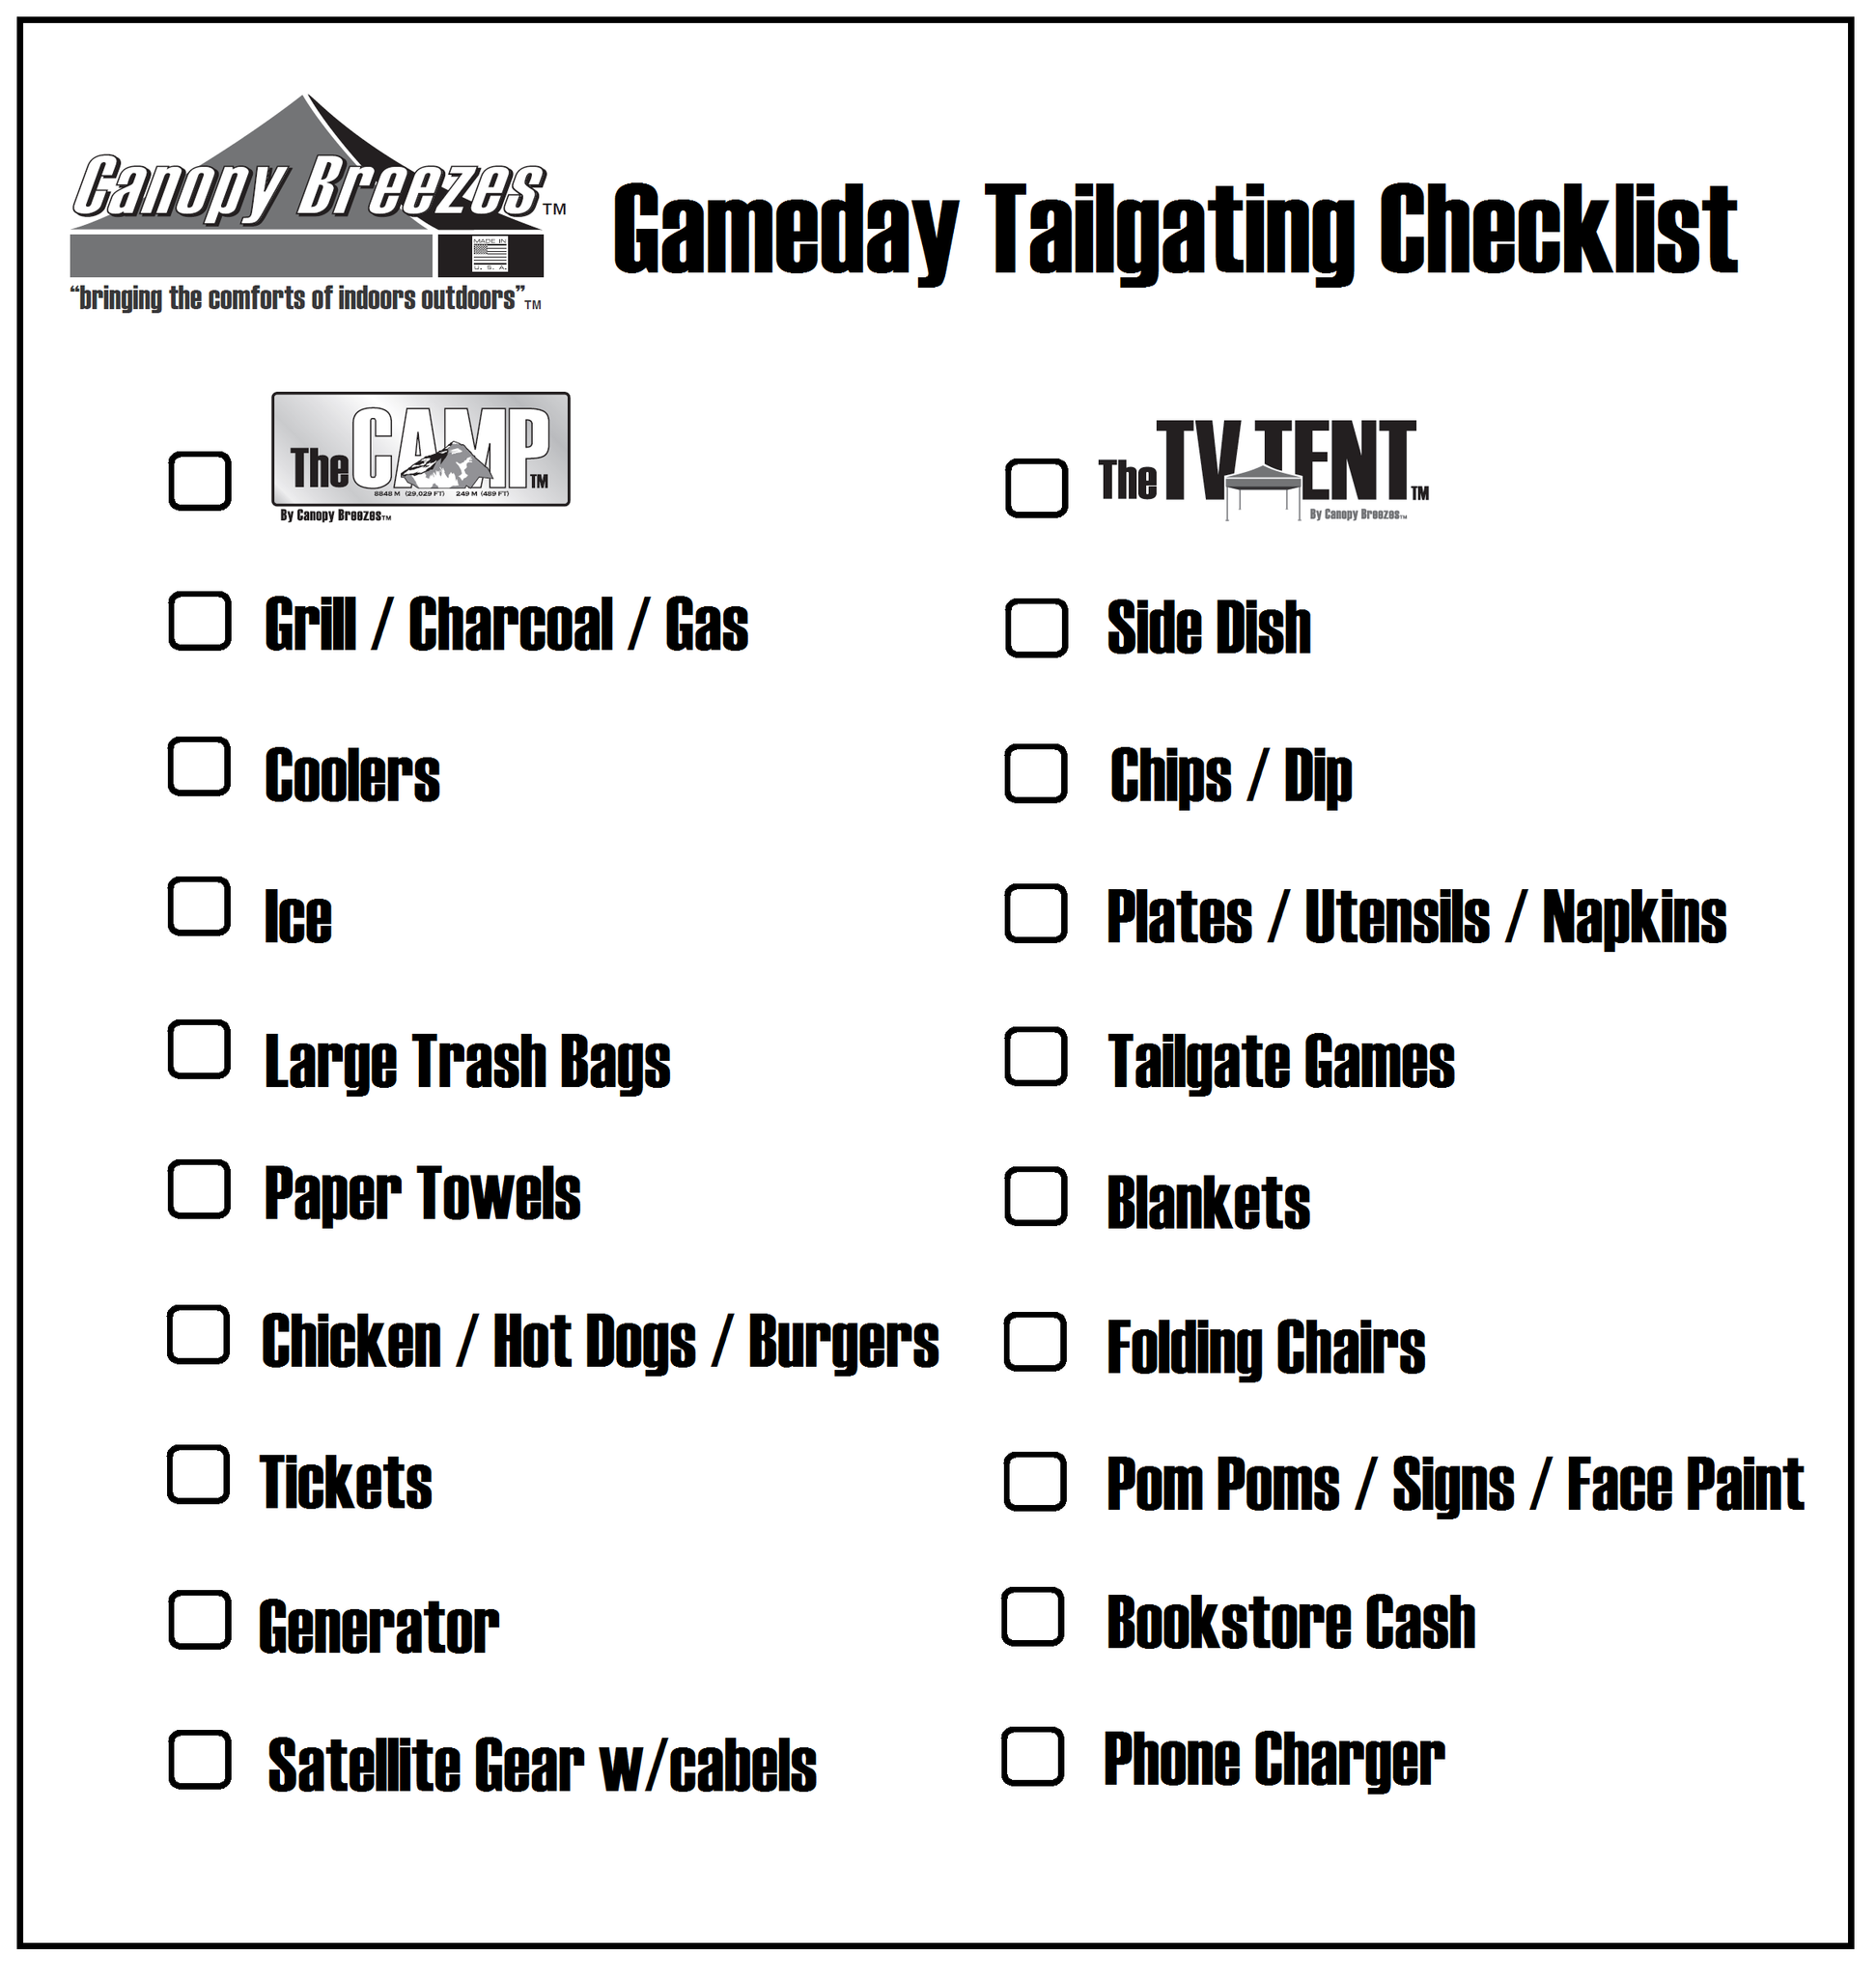 Gameday Tailgating Checklist